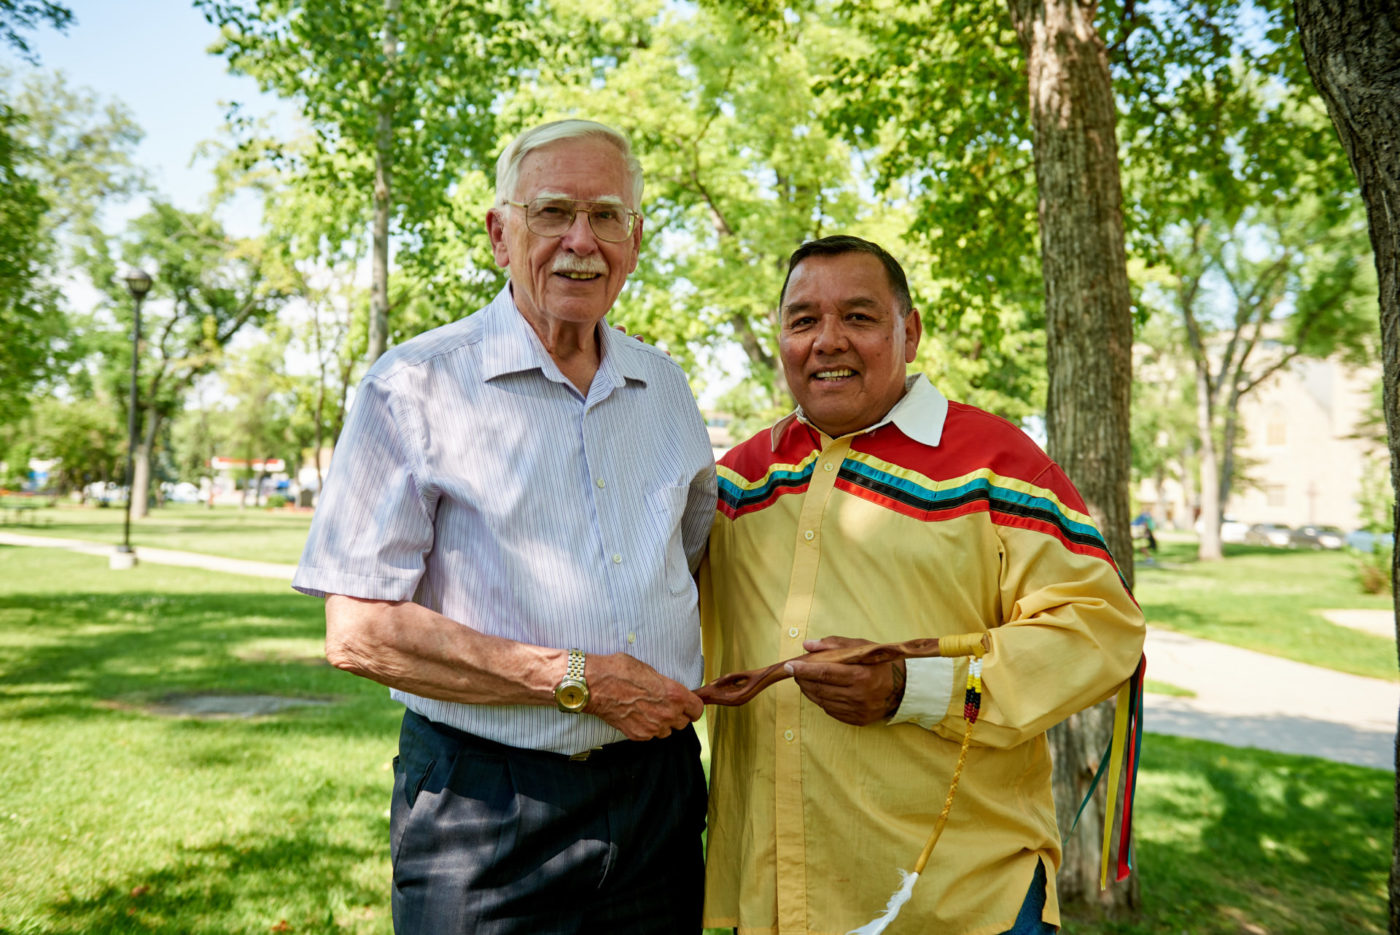 2017 Circles for Reconciliation, supported by the Winnipeg Foundation. Left: Raymond Currie, Project Coordinator; Right: Clayton Sandy, Indigenous Ambassador. Photo: Ian McCausland.